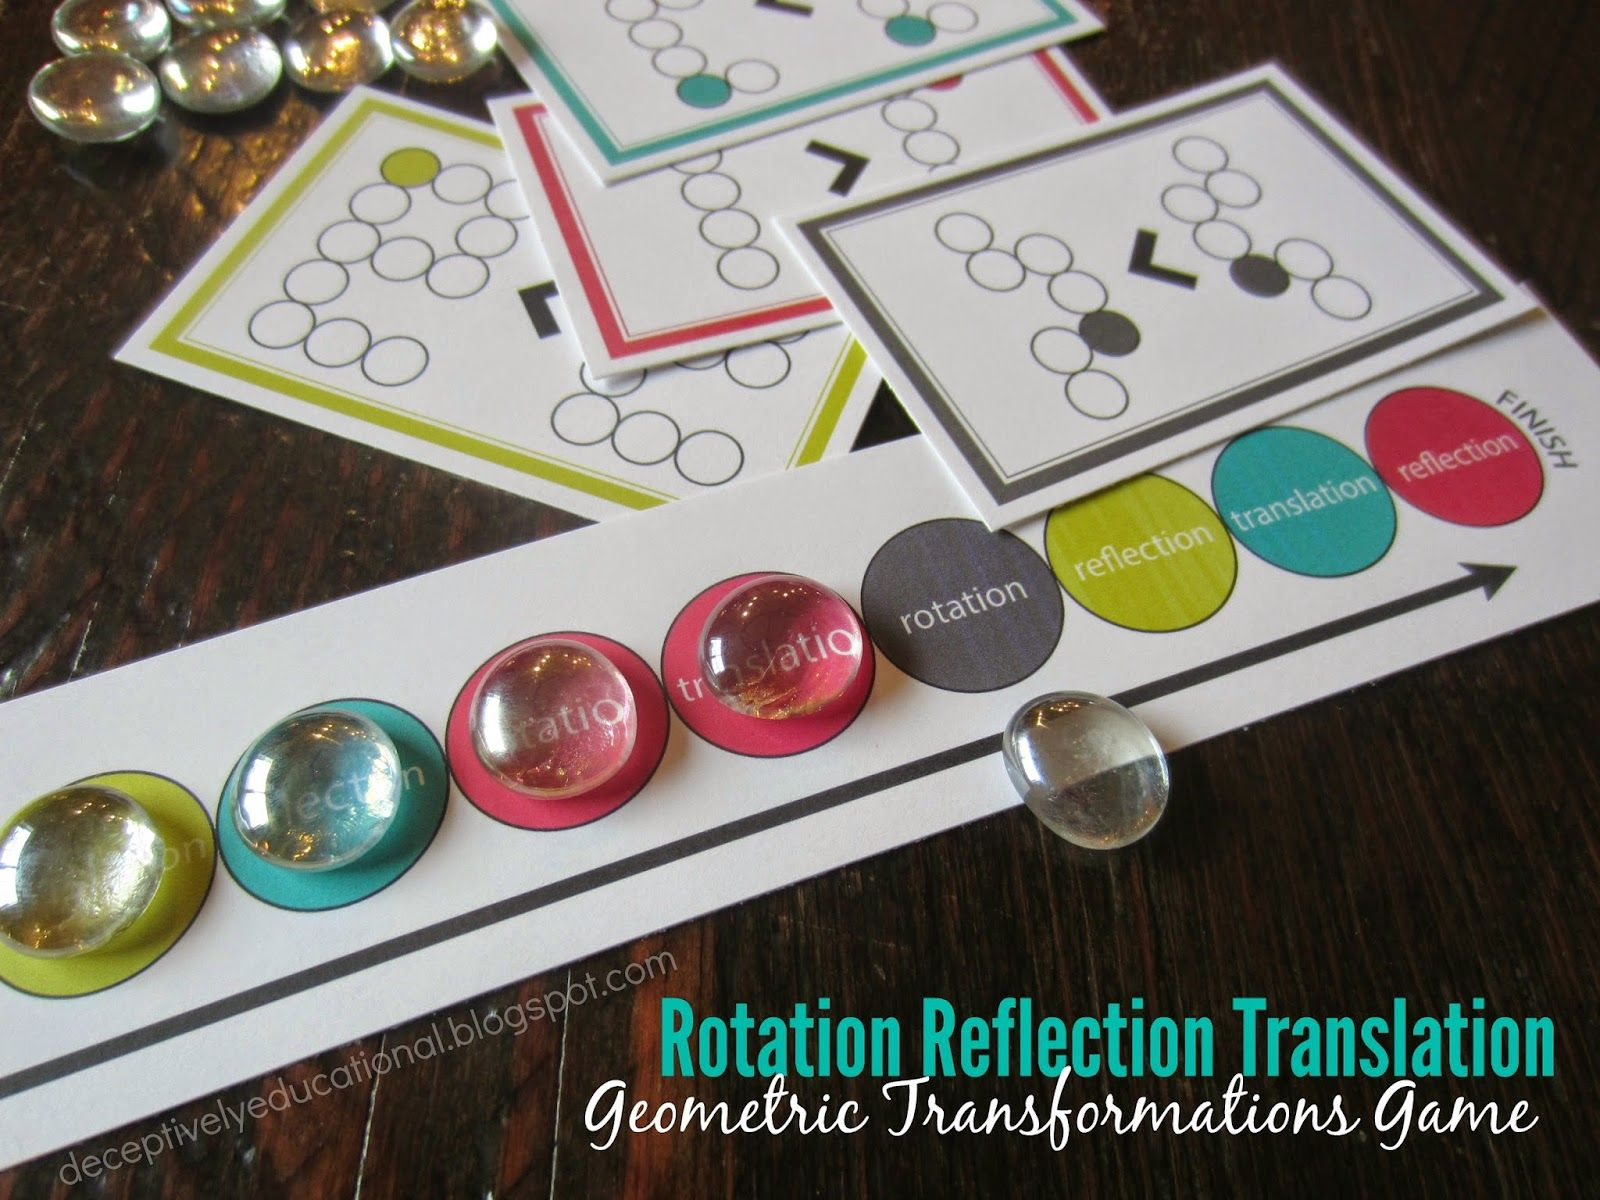 Rotation Reflection Translation Game Free Printable